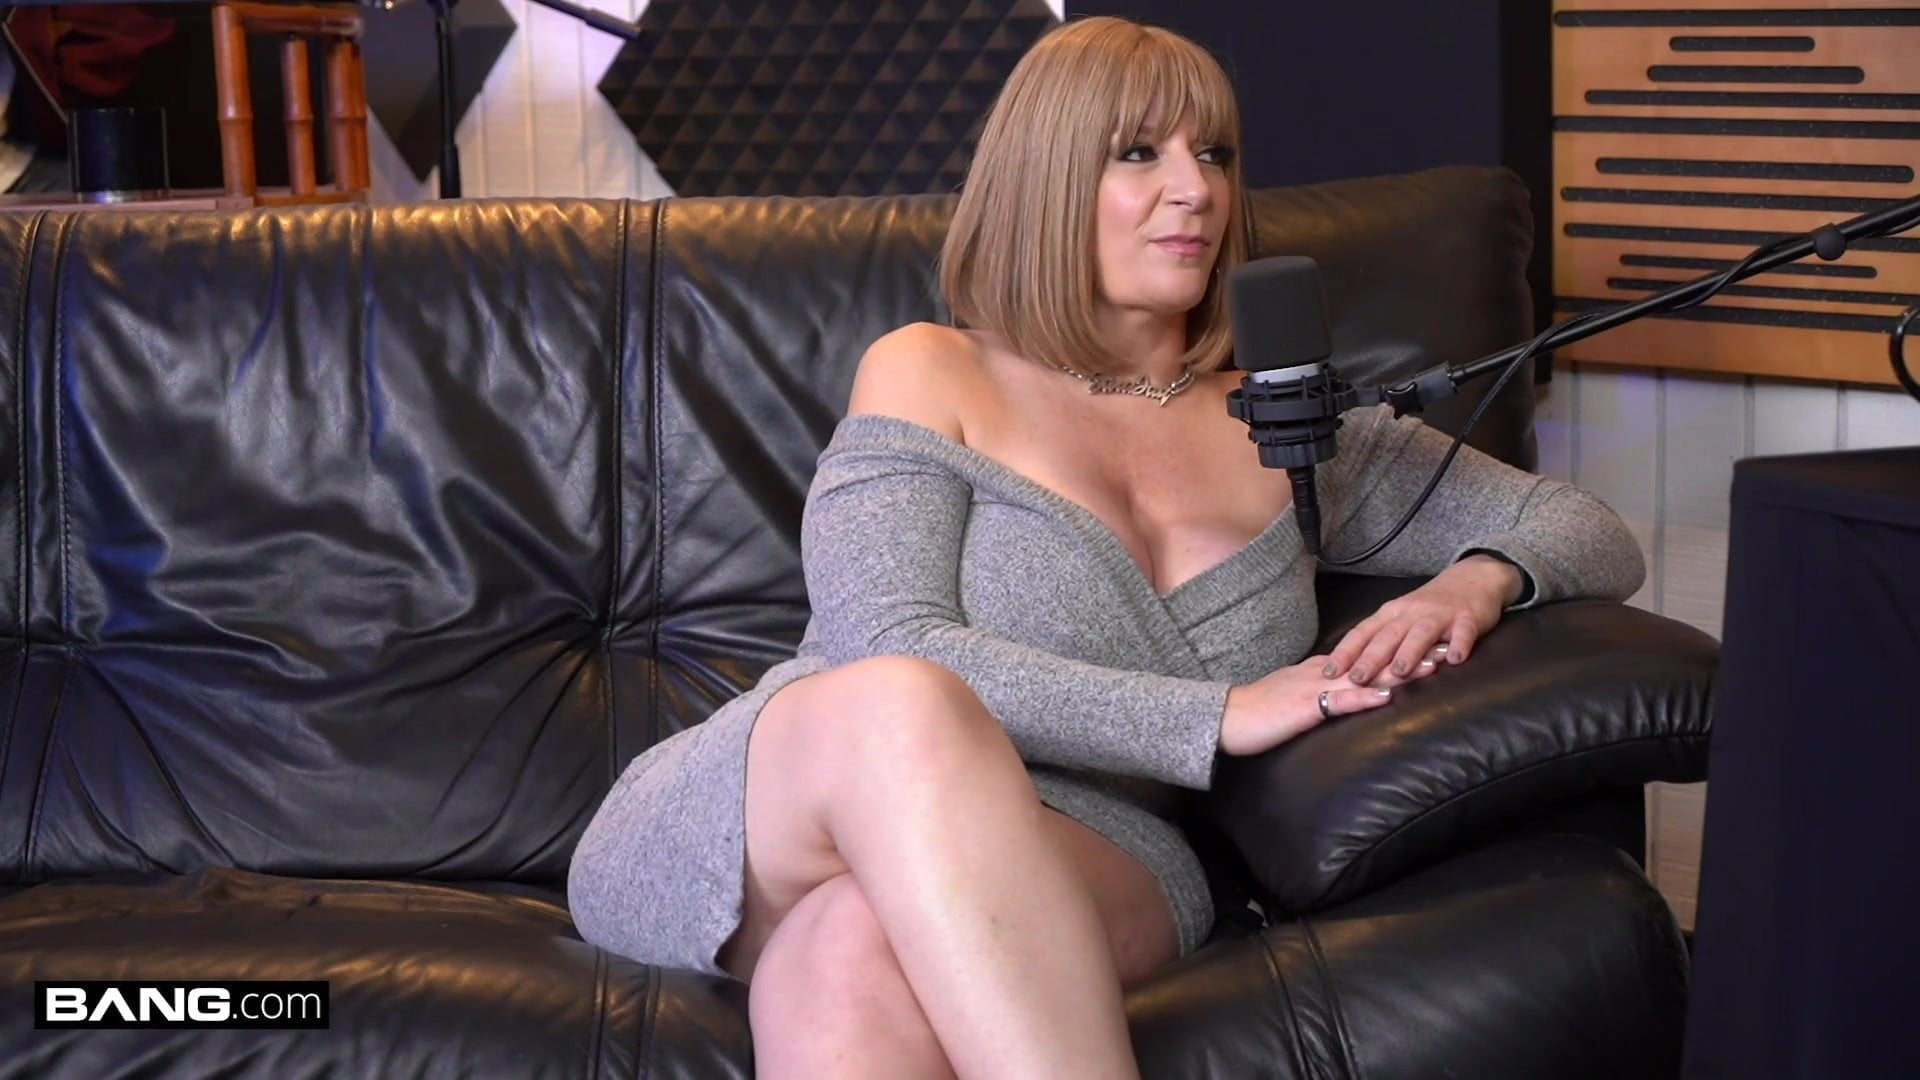 Bang Surprise Podcast 1 With Sara Jay Hd Porn 0f Xhamster Xhamster